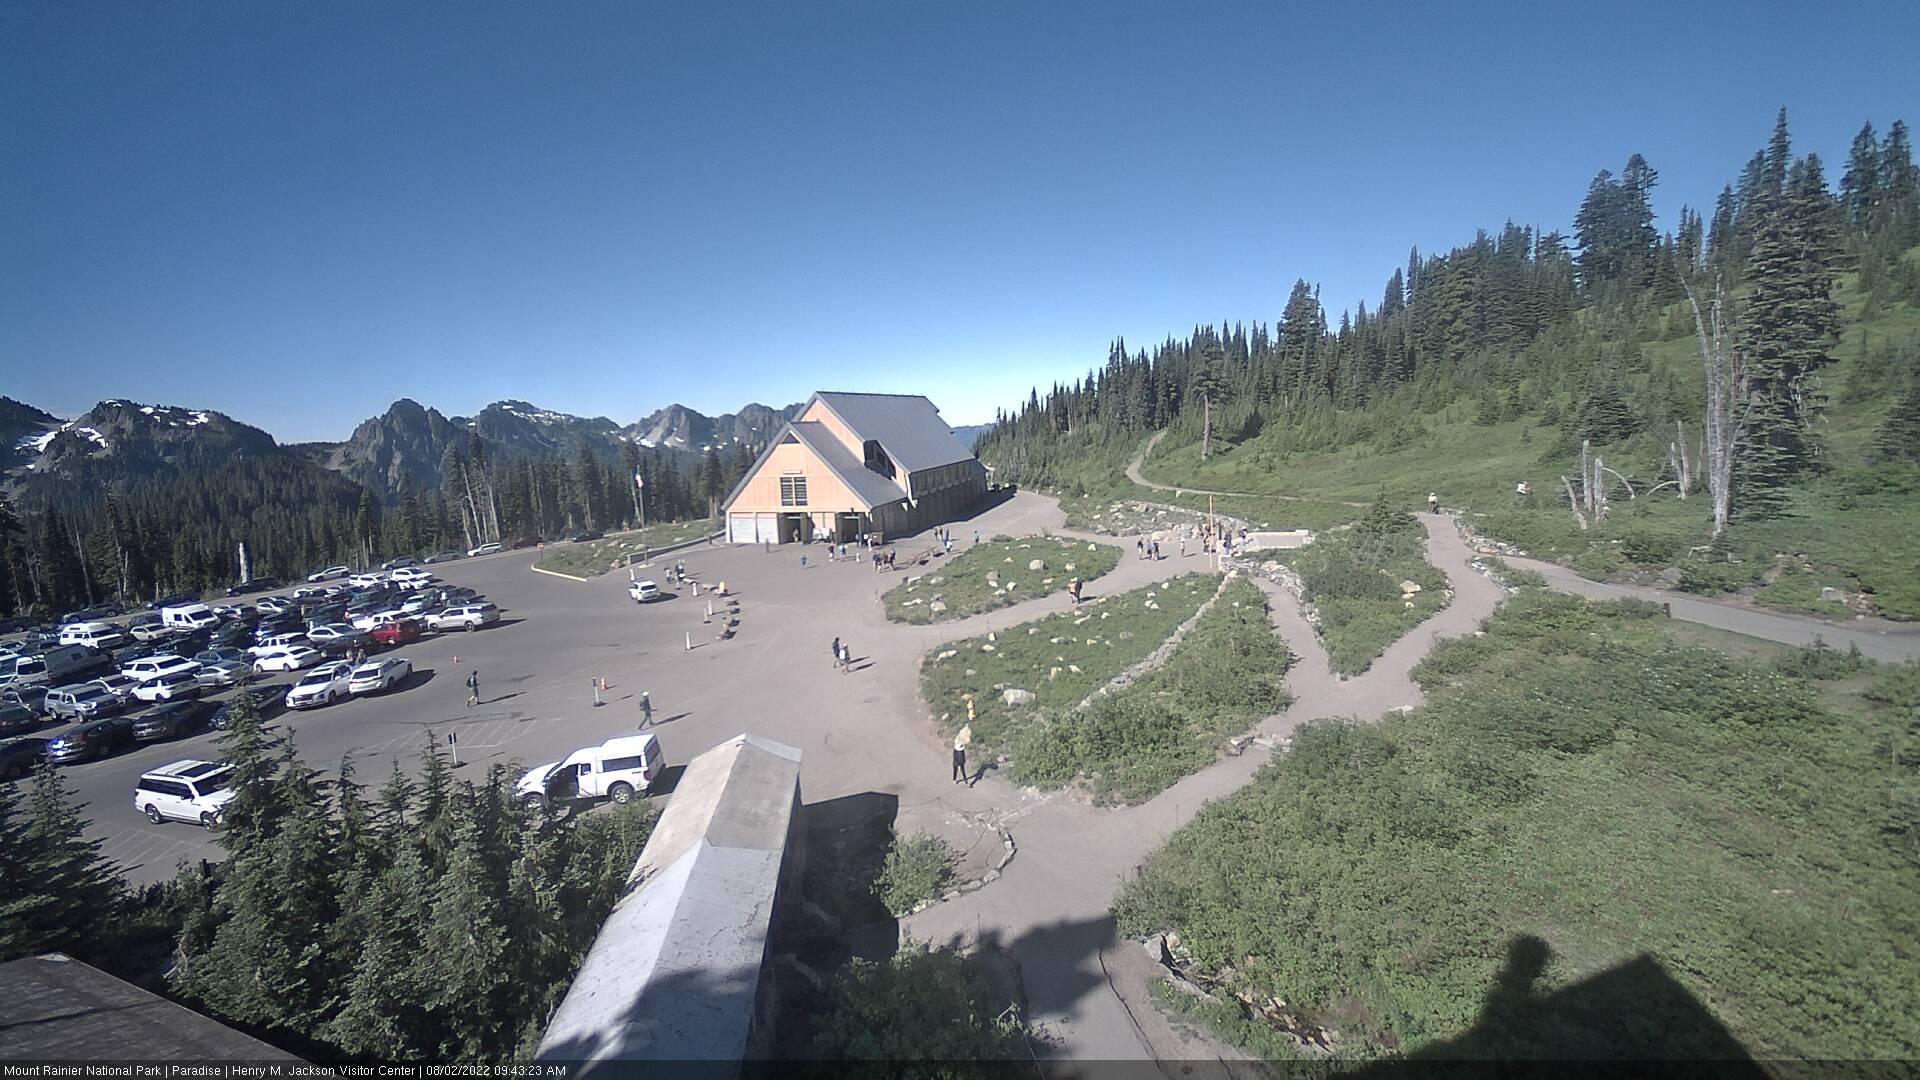 Mt. Rainer Webcam